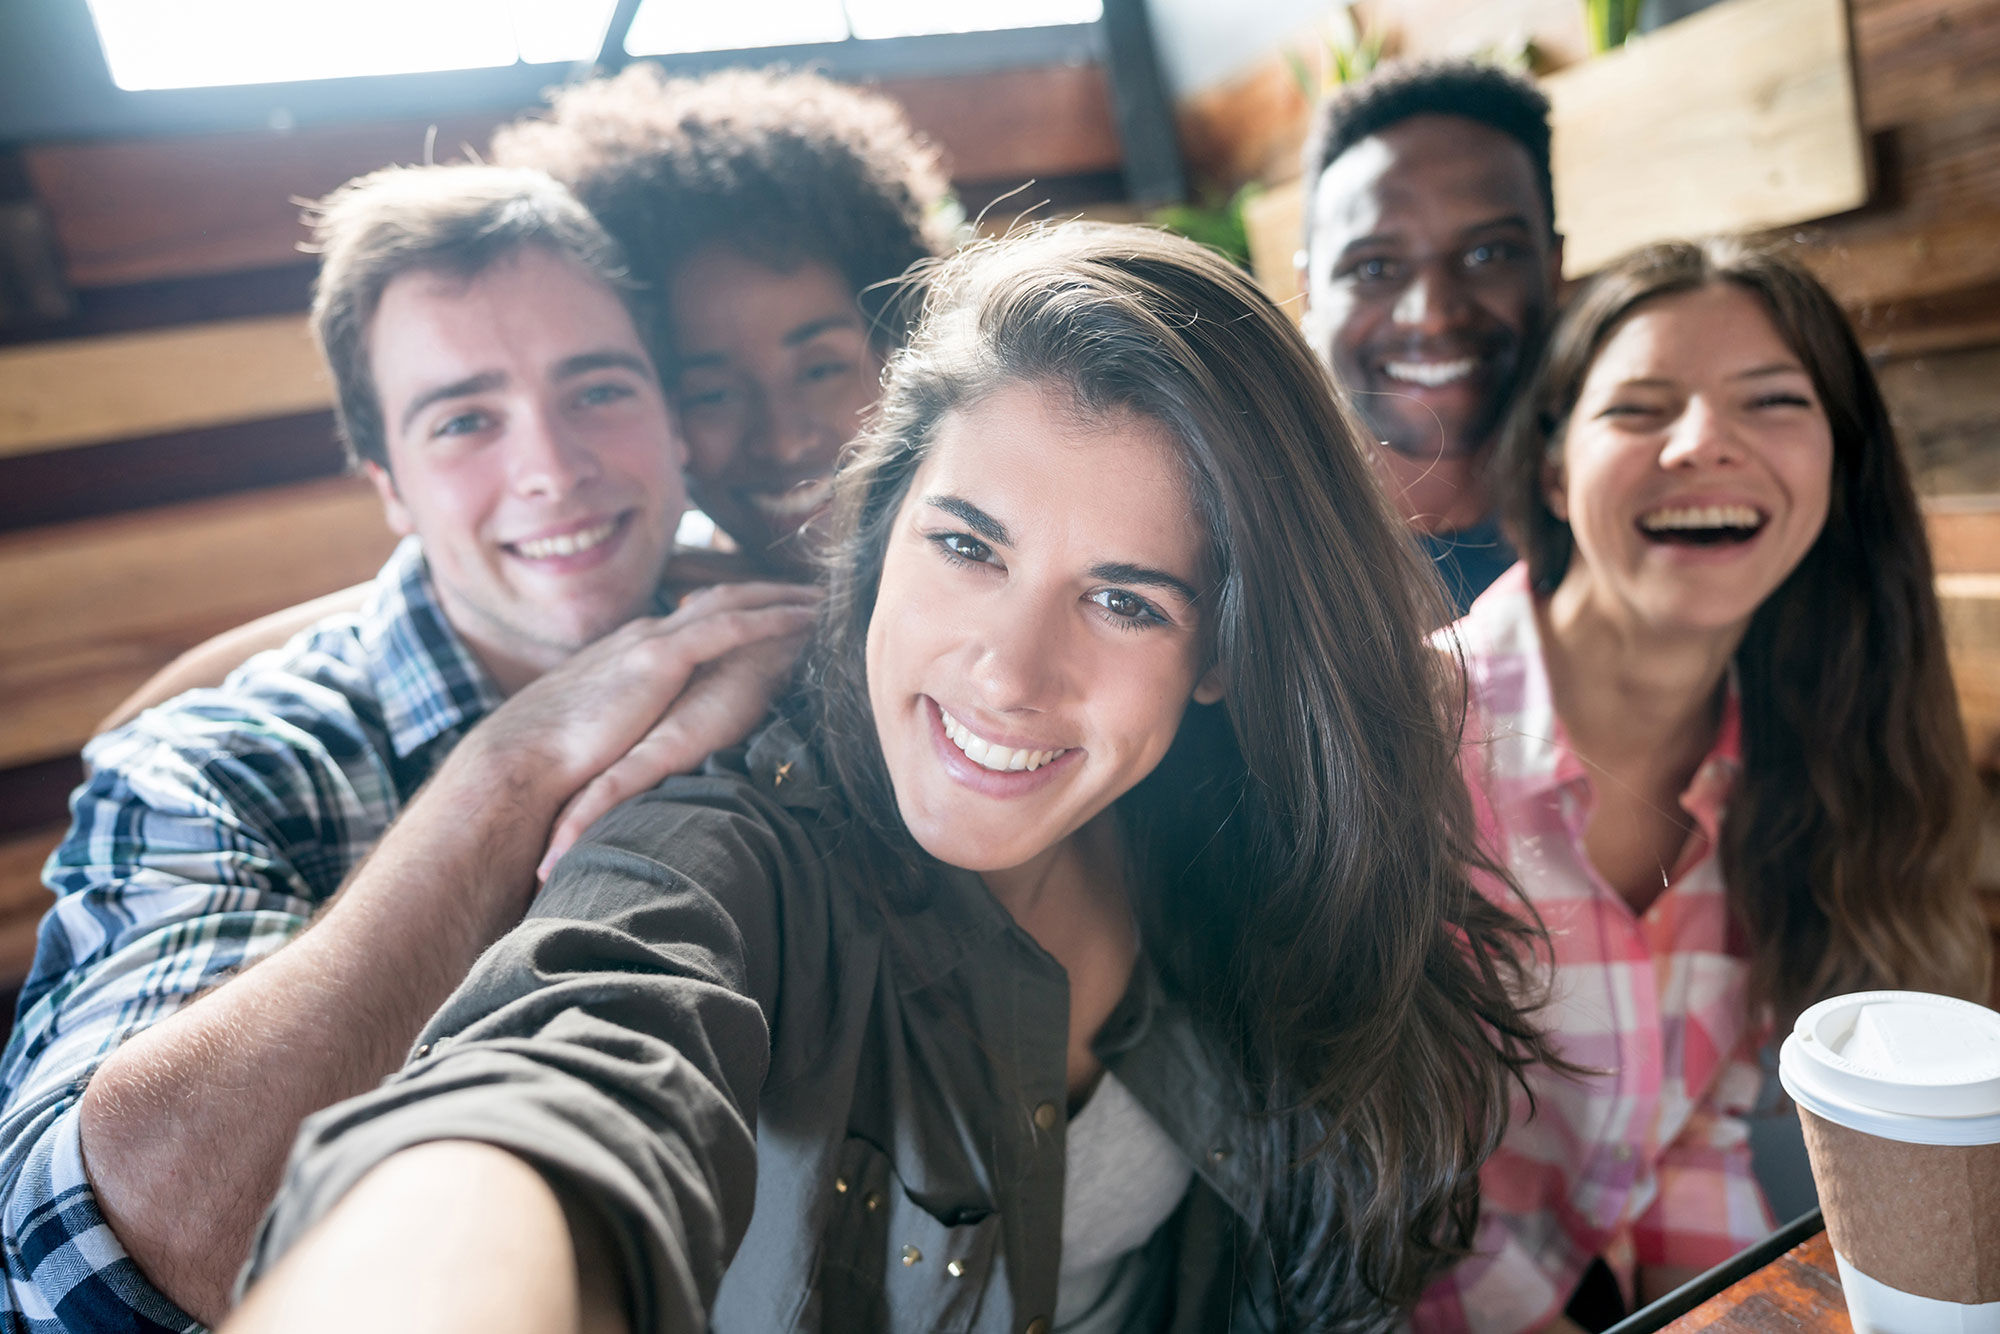 A group of friends take a selfie while grabbing coffee.